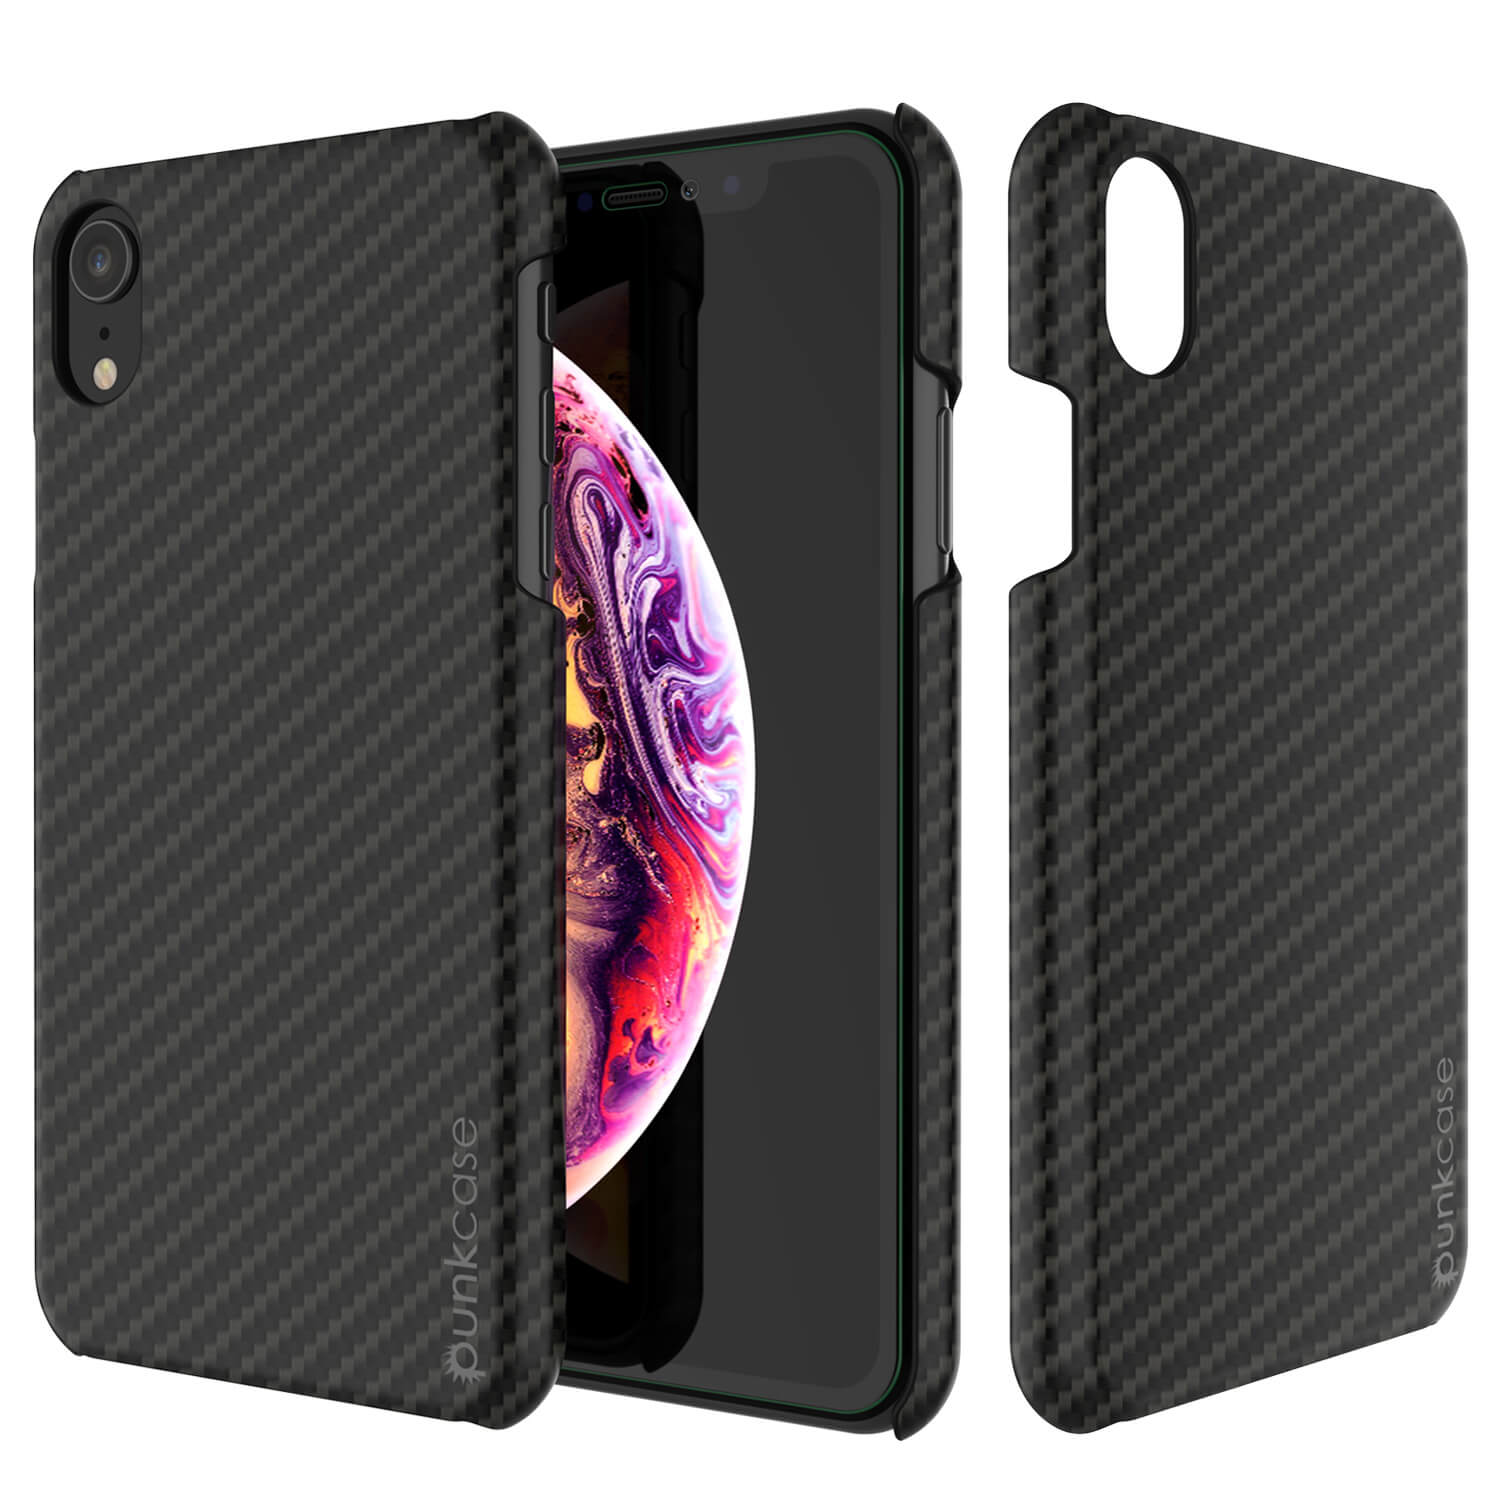 iPhone XR Case, Punkcase CarbonShield, Heavy Duty & Ultra Thin 2 Piece Dual Layer [shockproof]